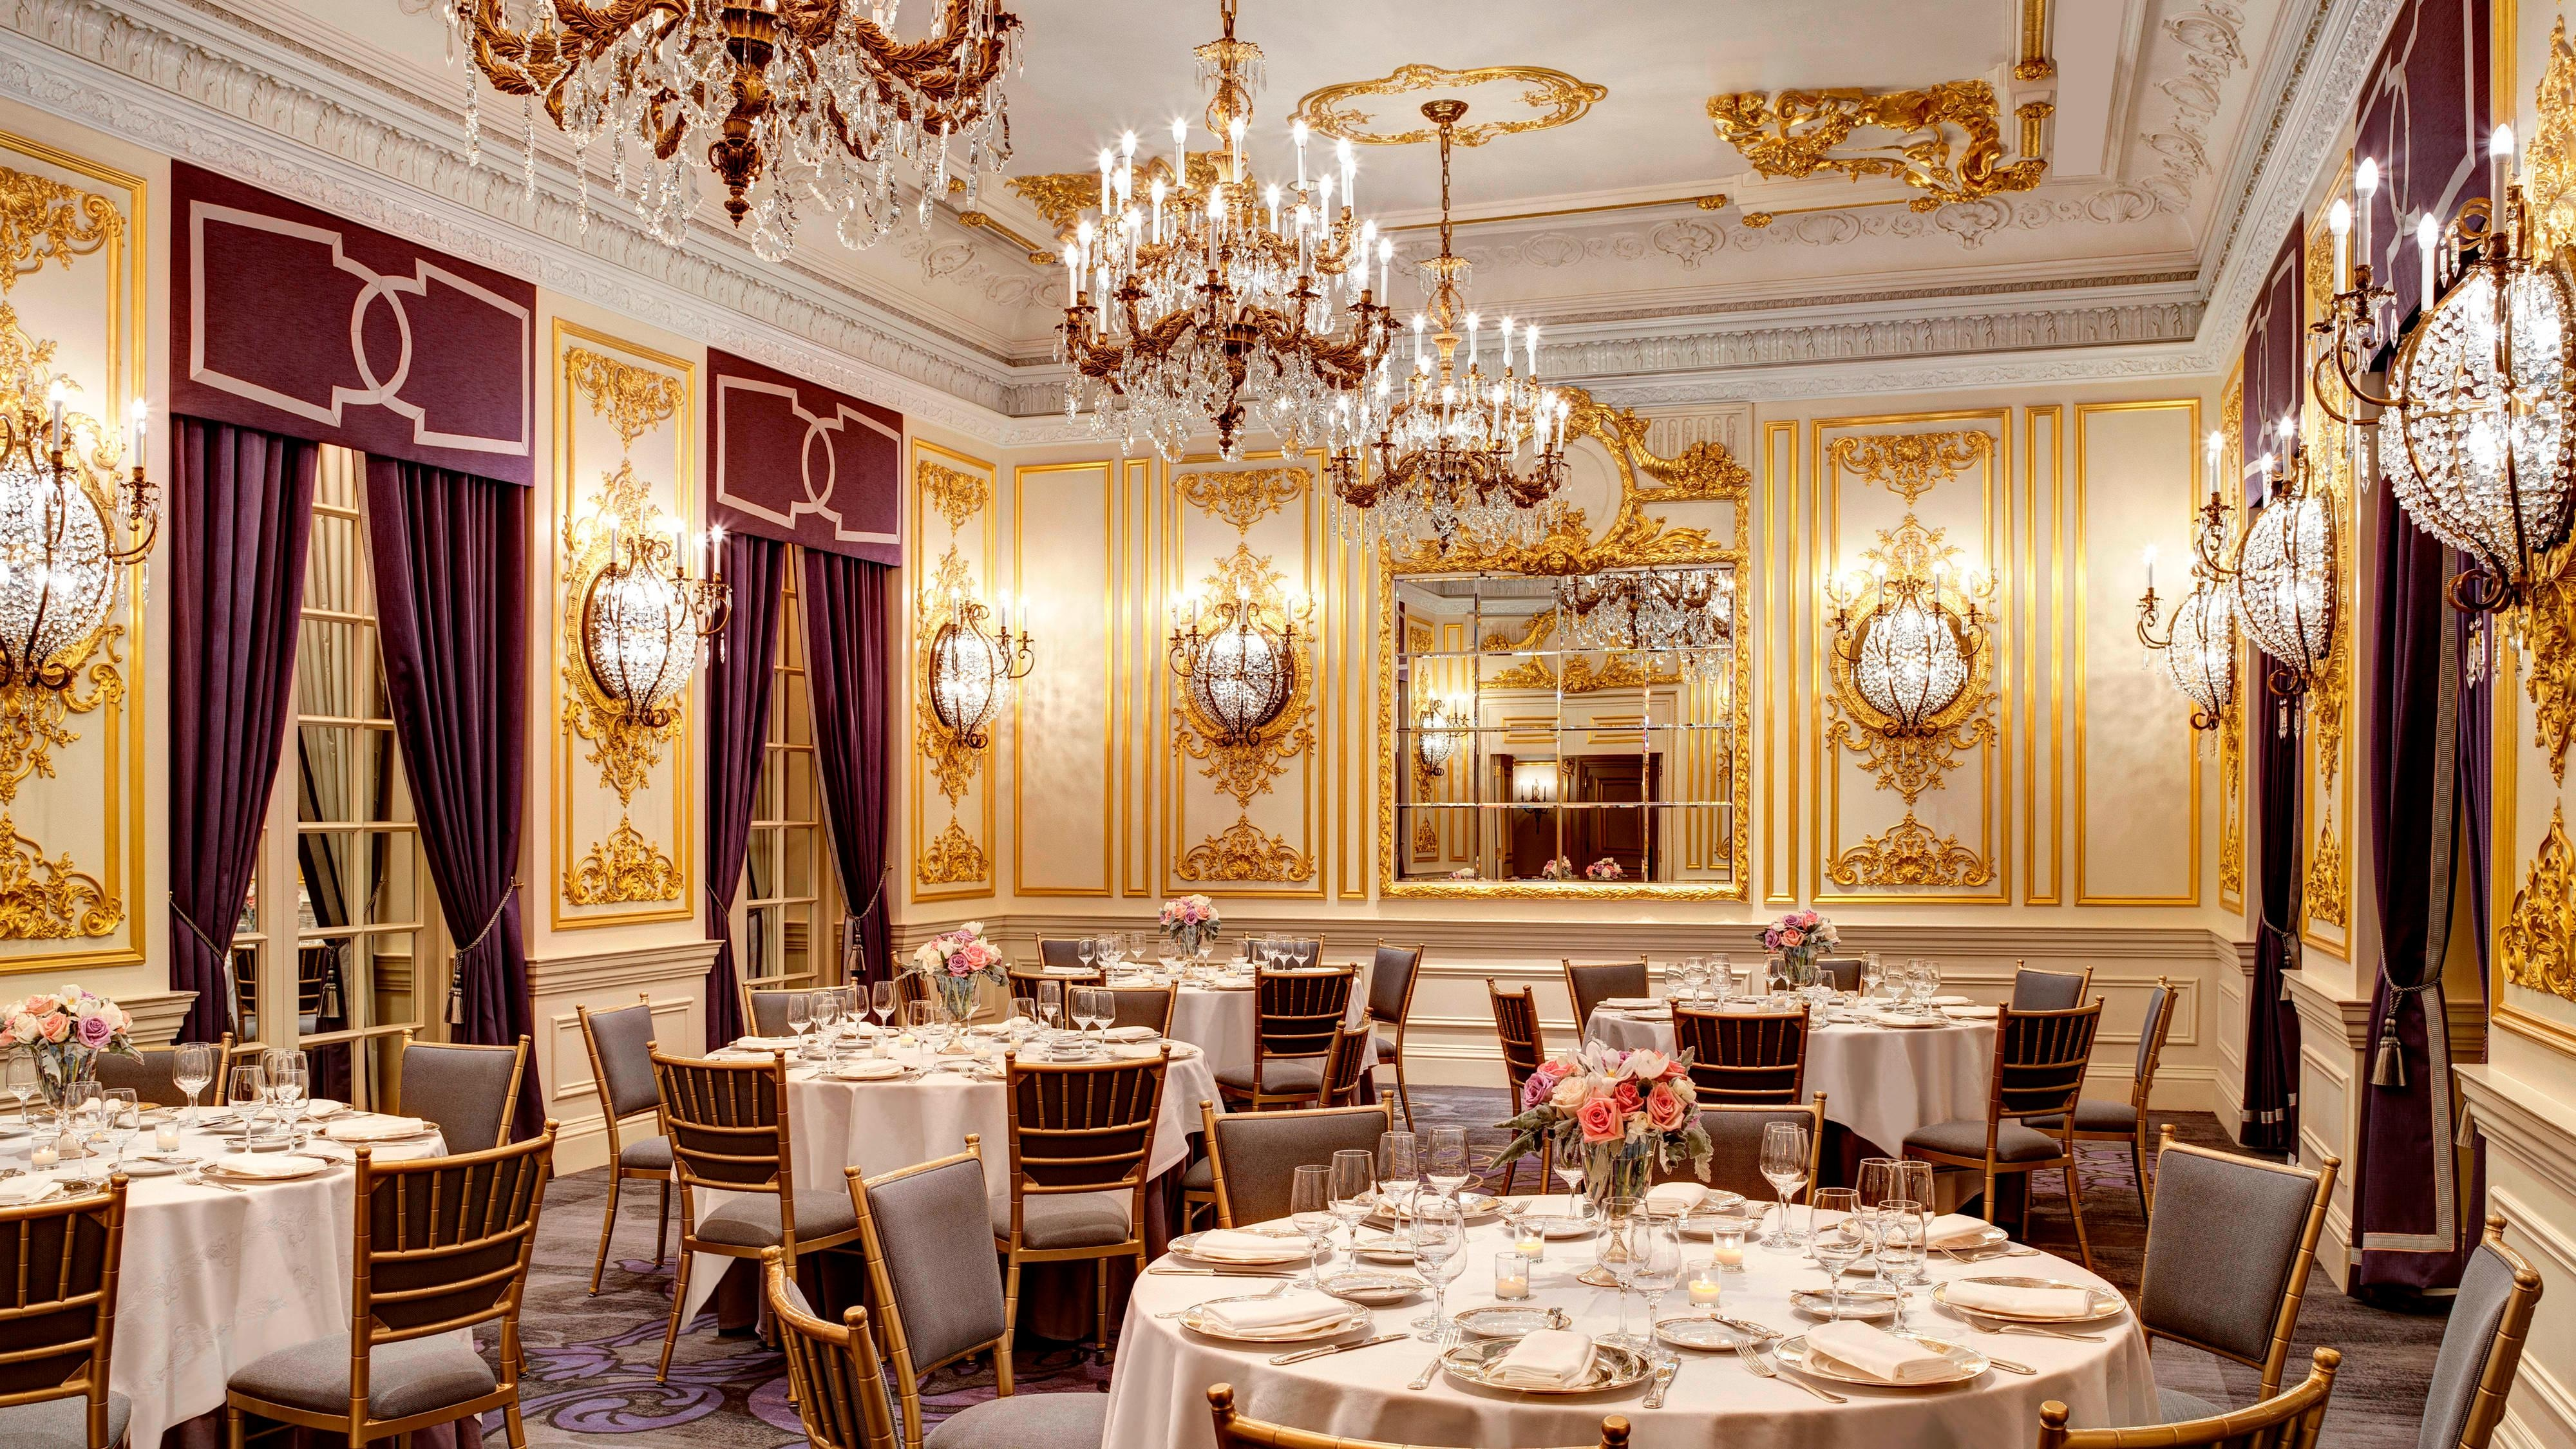 The Fontainebleau Room